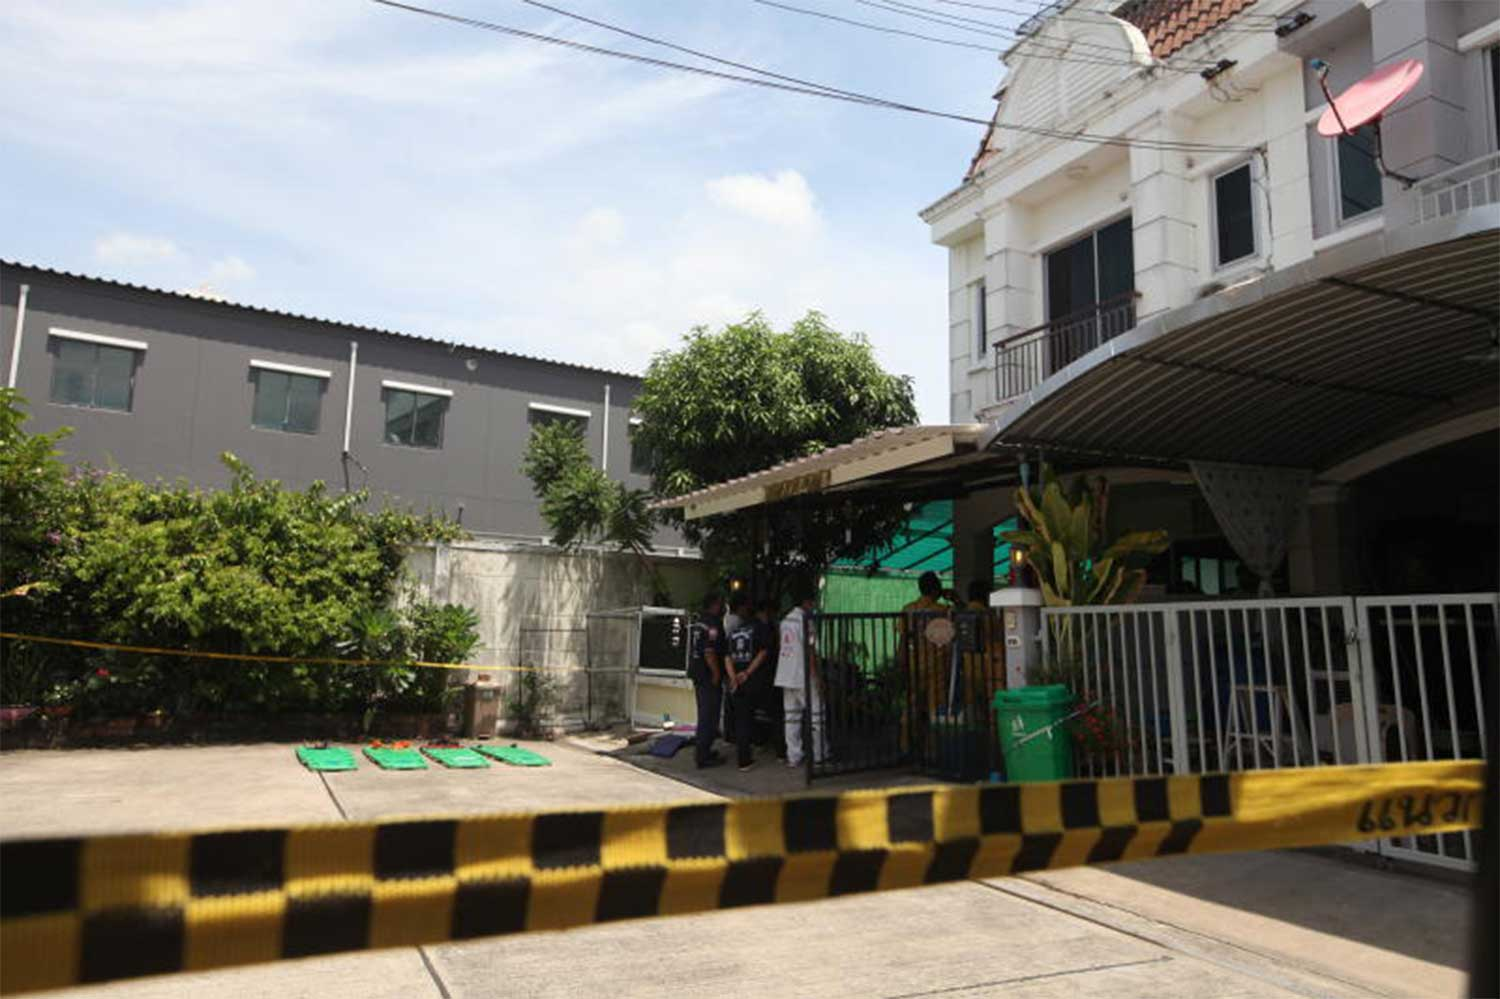 Police cordon off the house where five members of an army sergeant major's family were found shot dead at a housing estate in Thung Khru district, Bangkok, on Thursday morning. (Photo: Arnun Chonmahatrakool)